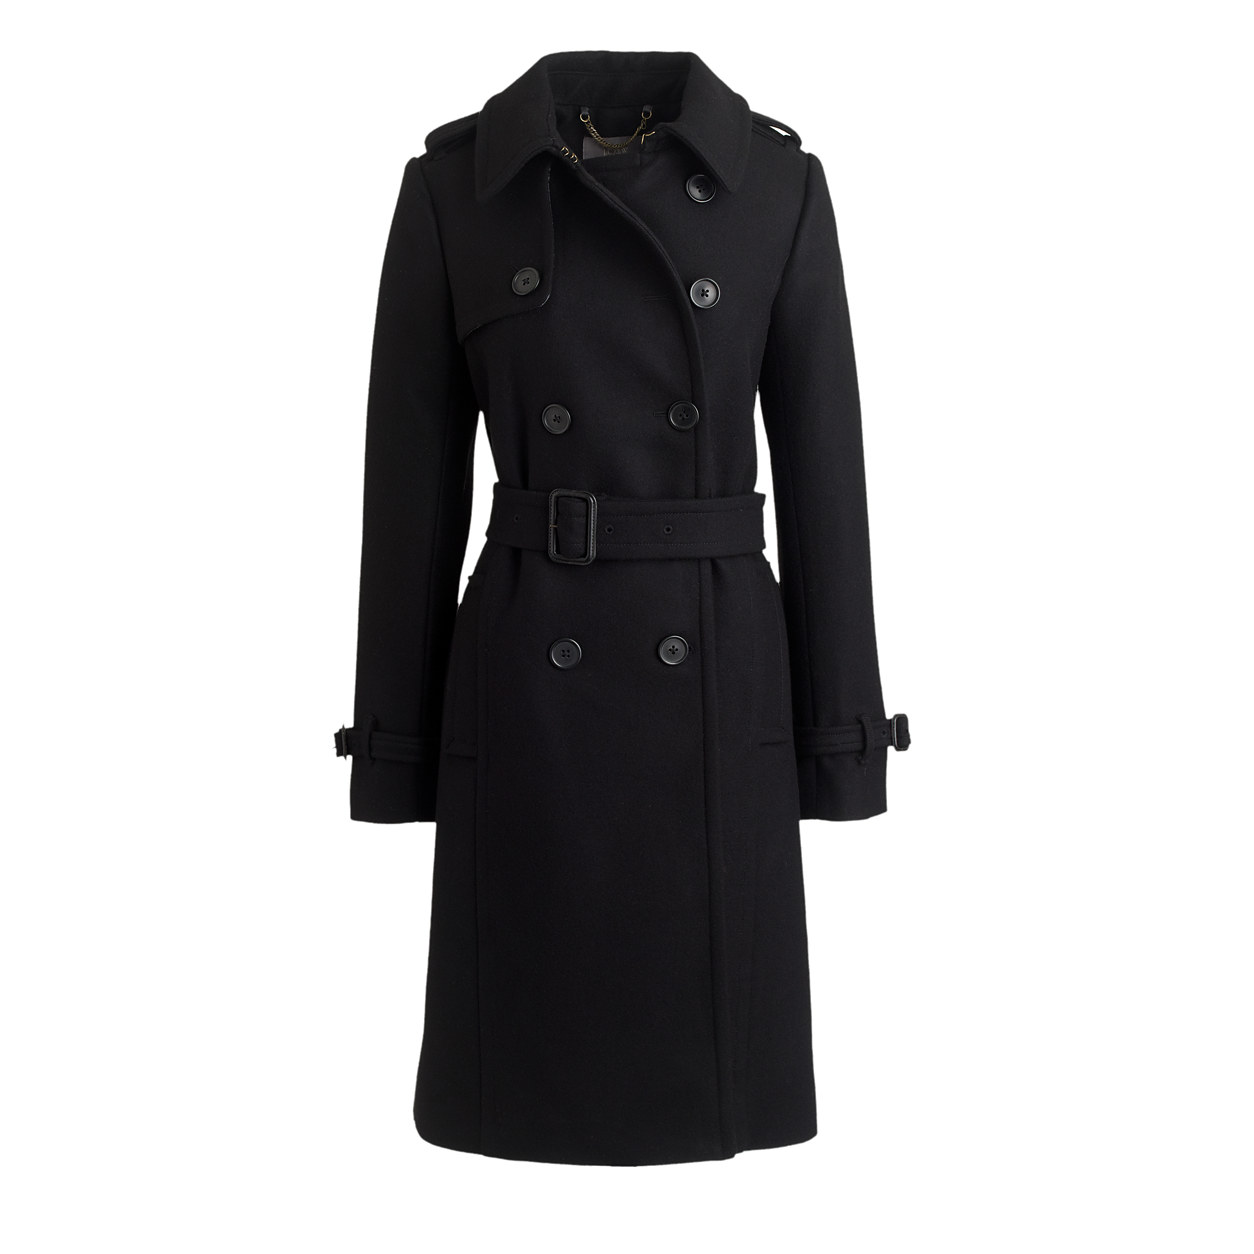 J.Crew Icon Trench in Wool Cashmere Black